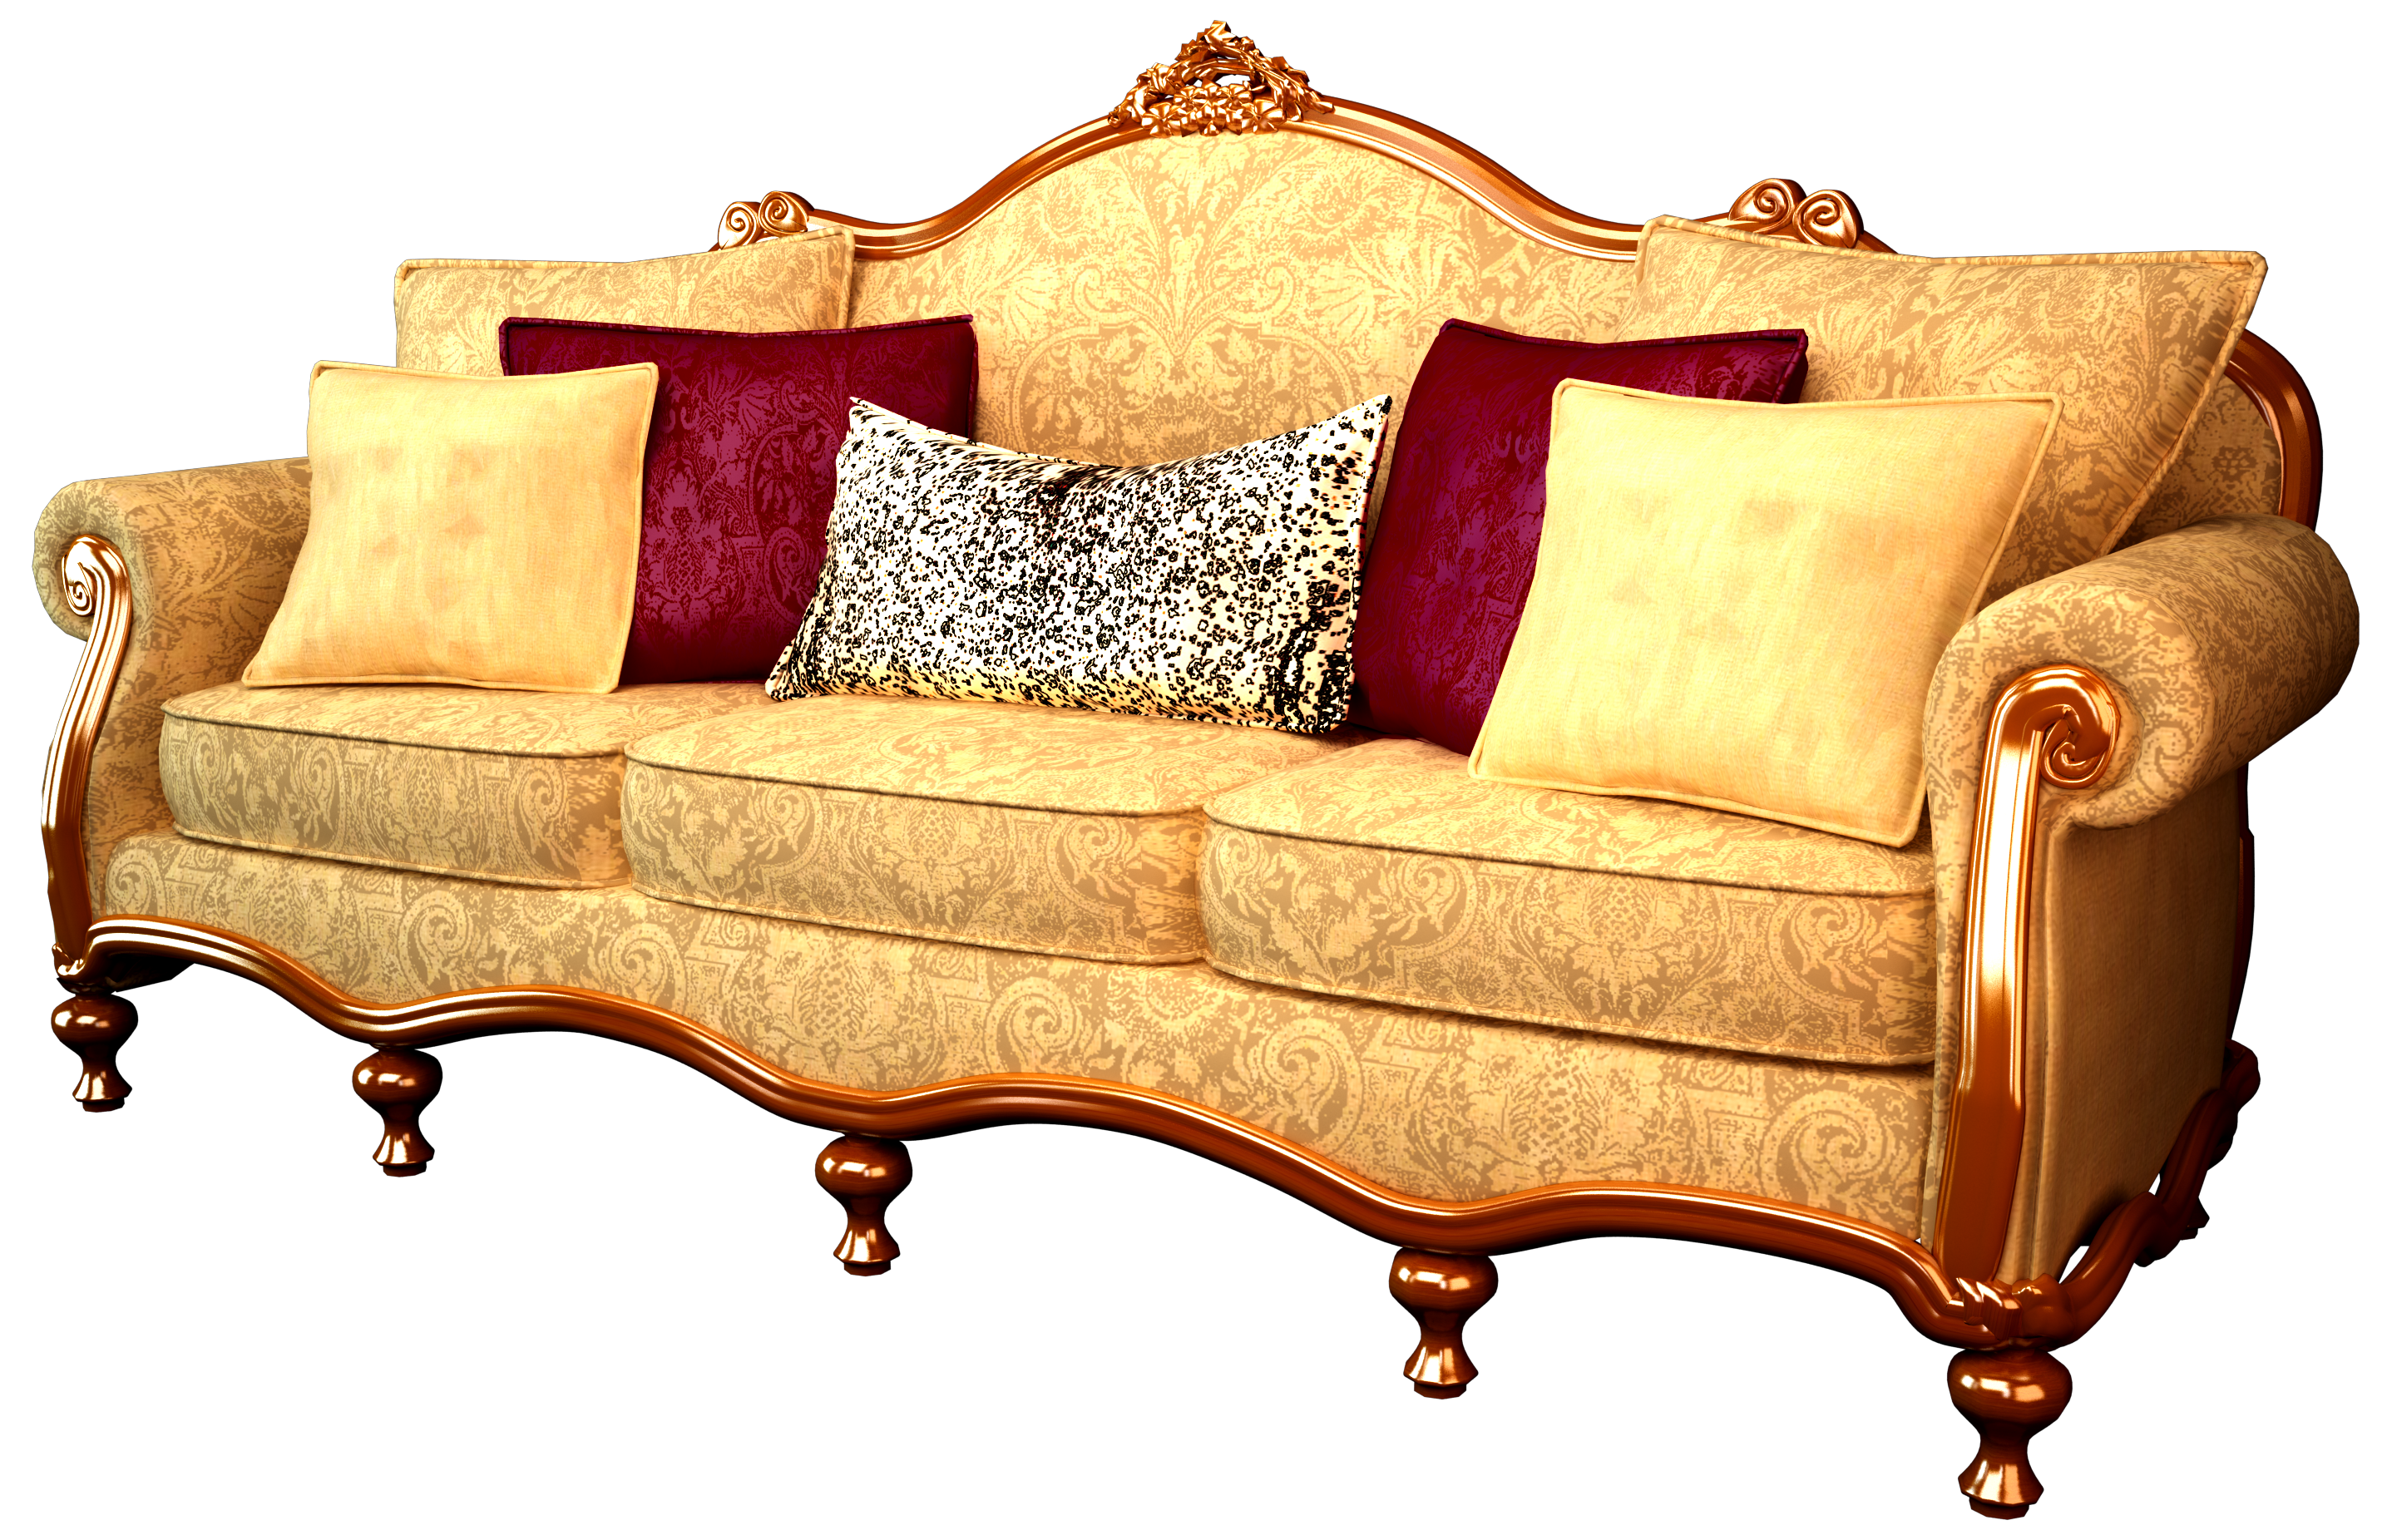 Sofa gallery png picture. Couch clipart above